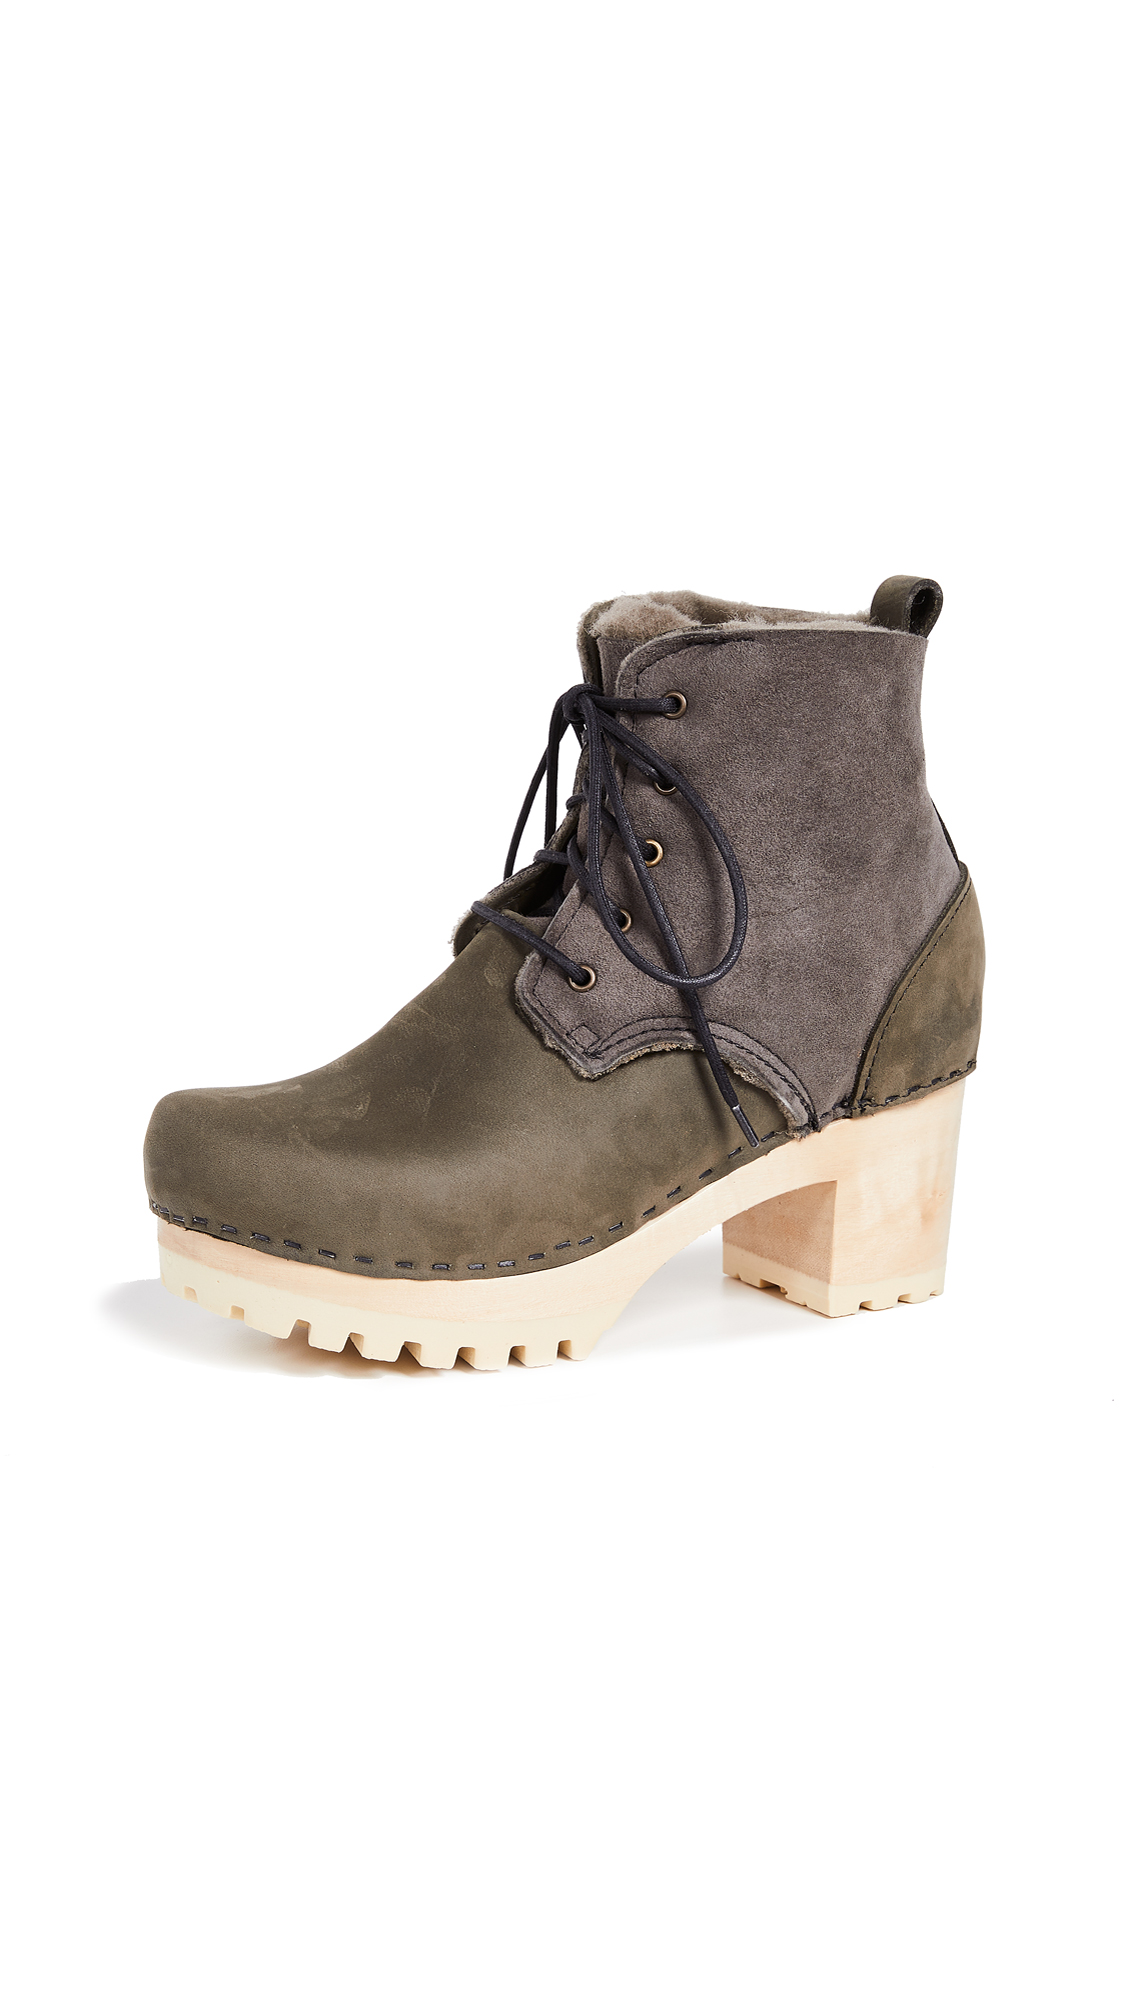 NO. 6 Lander Lace Up Shearling Boots in Storm